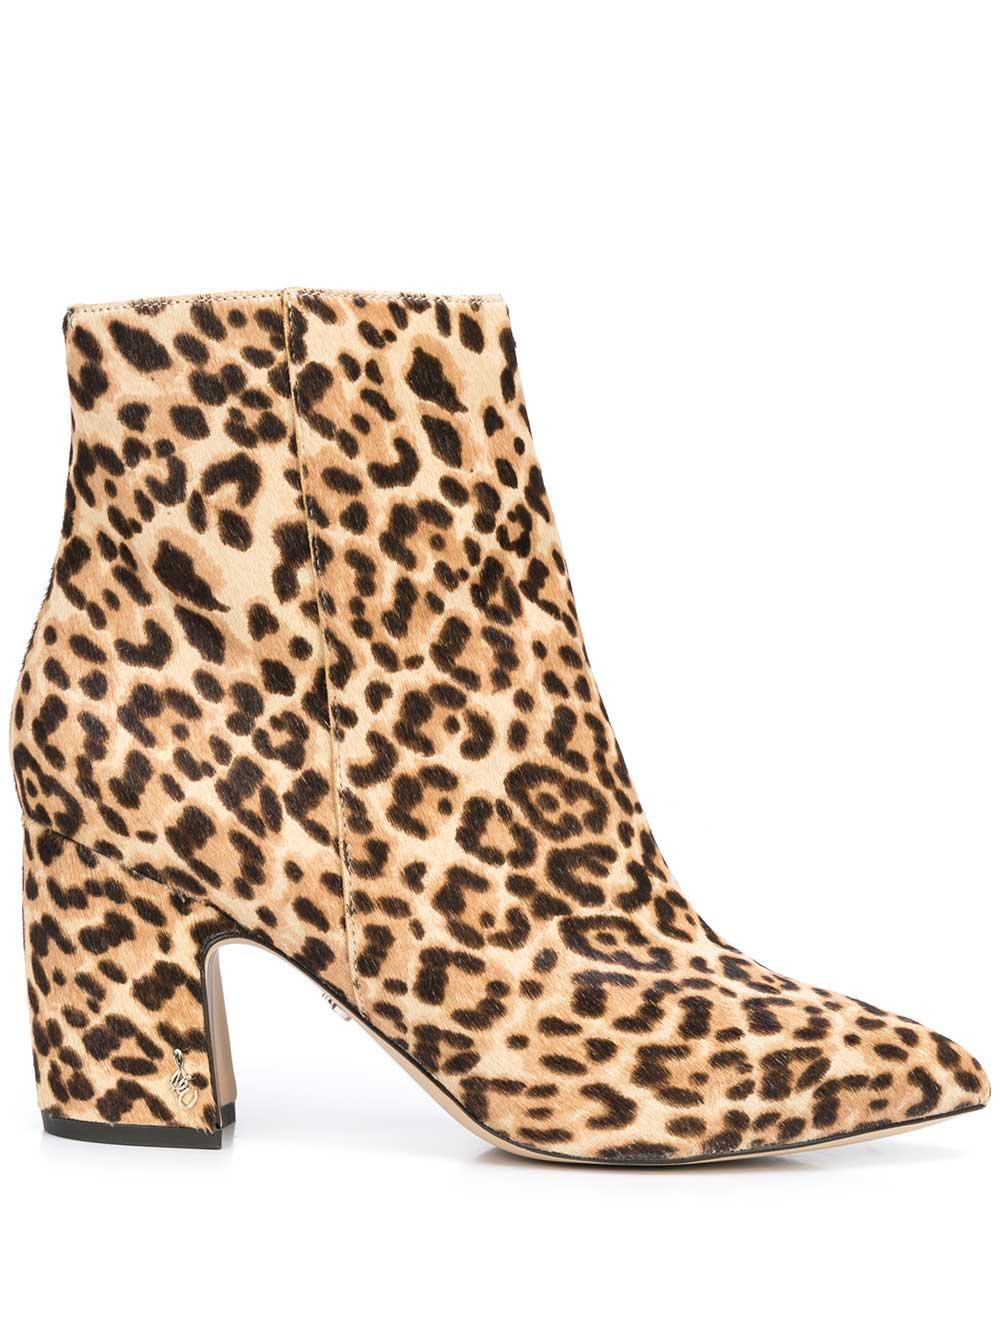 Leopard Calf Hair Pointed Toe Bootie